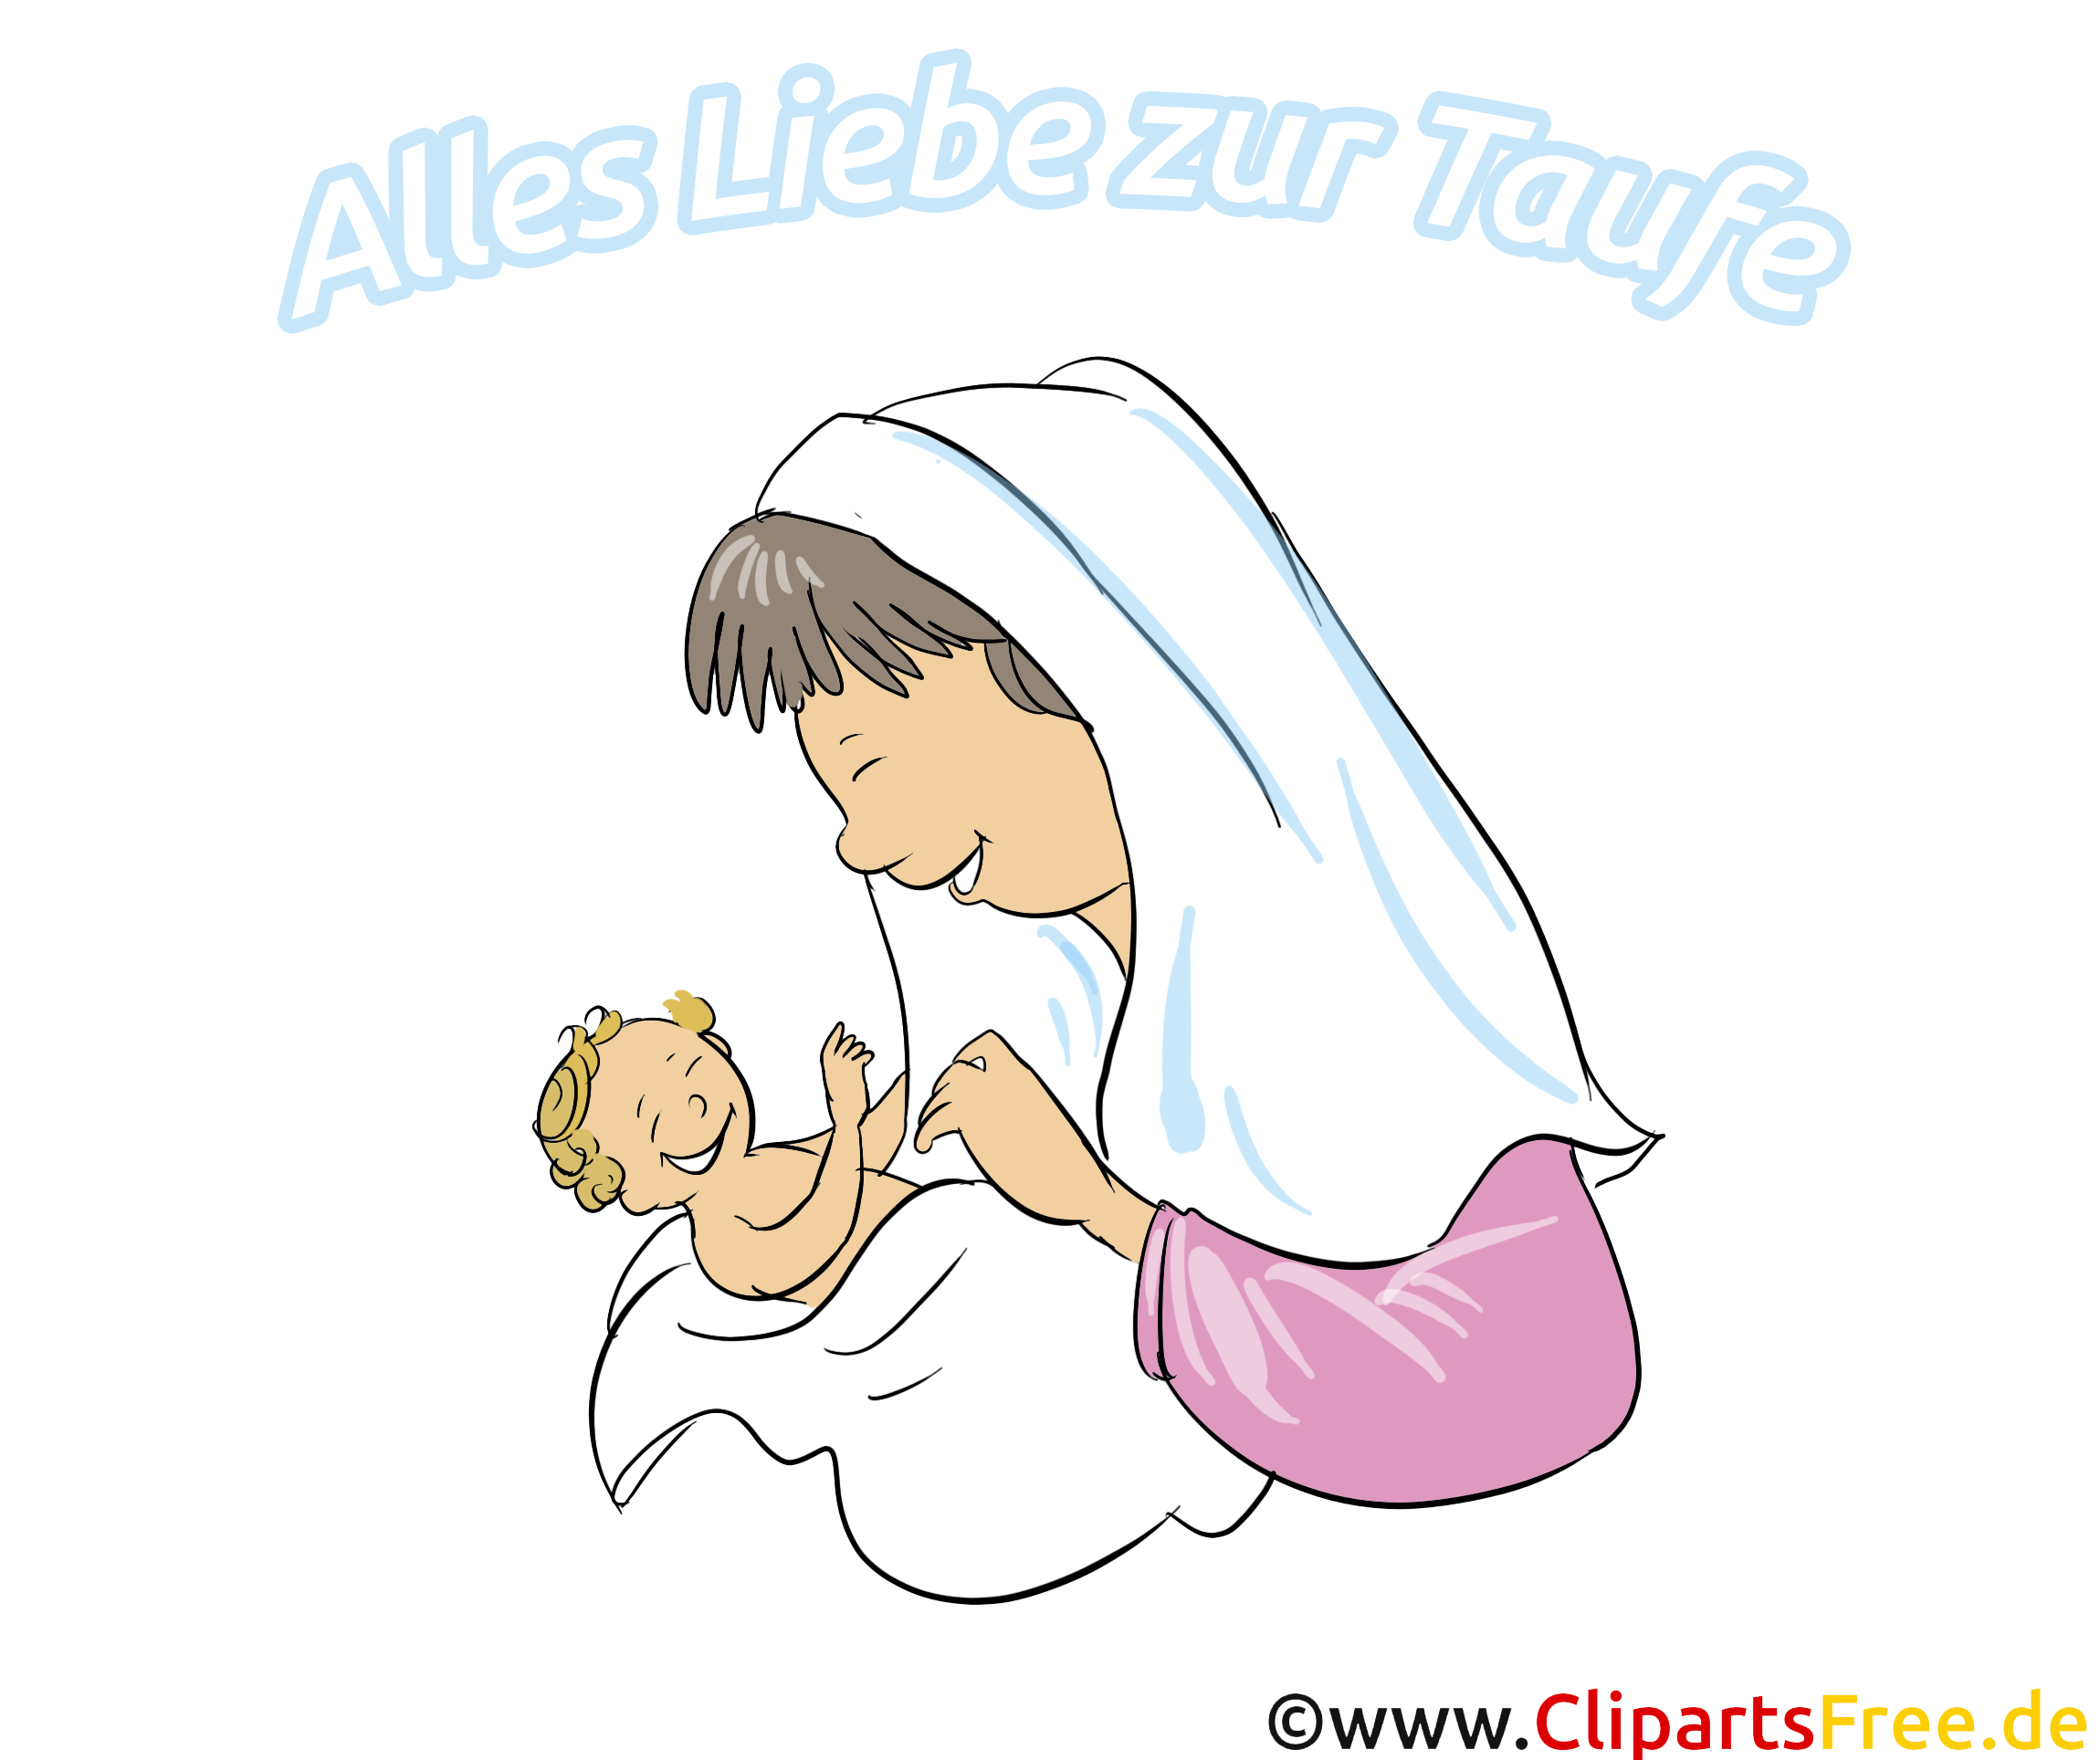 Mama und baby clipart image royalty free library Mama und kind clipart - ClipartFox image royalty free library